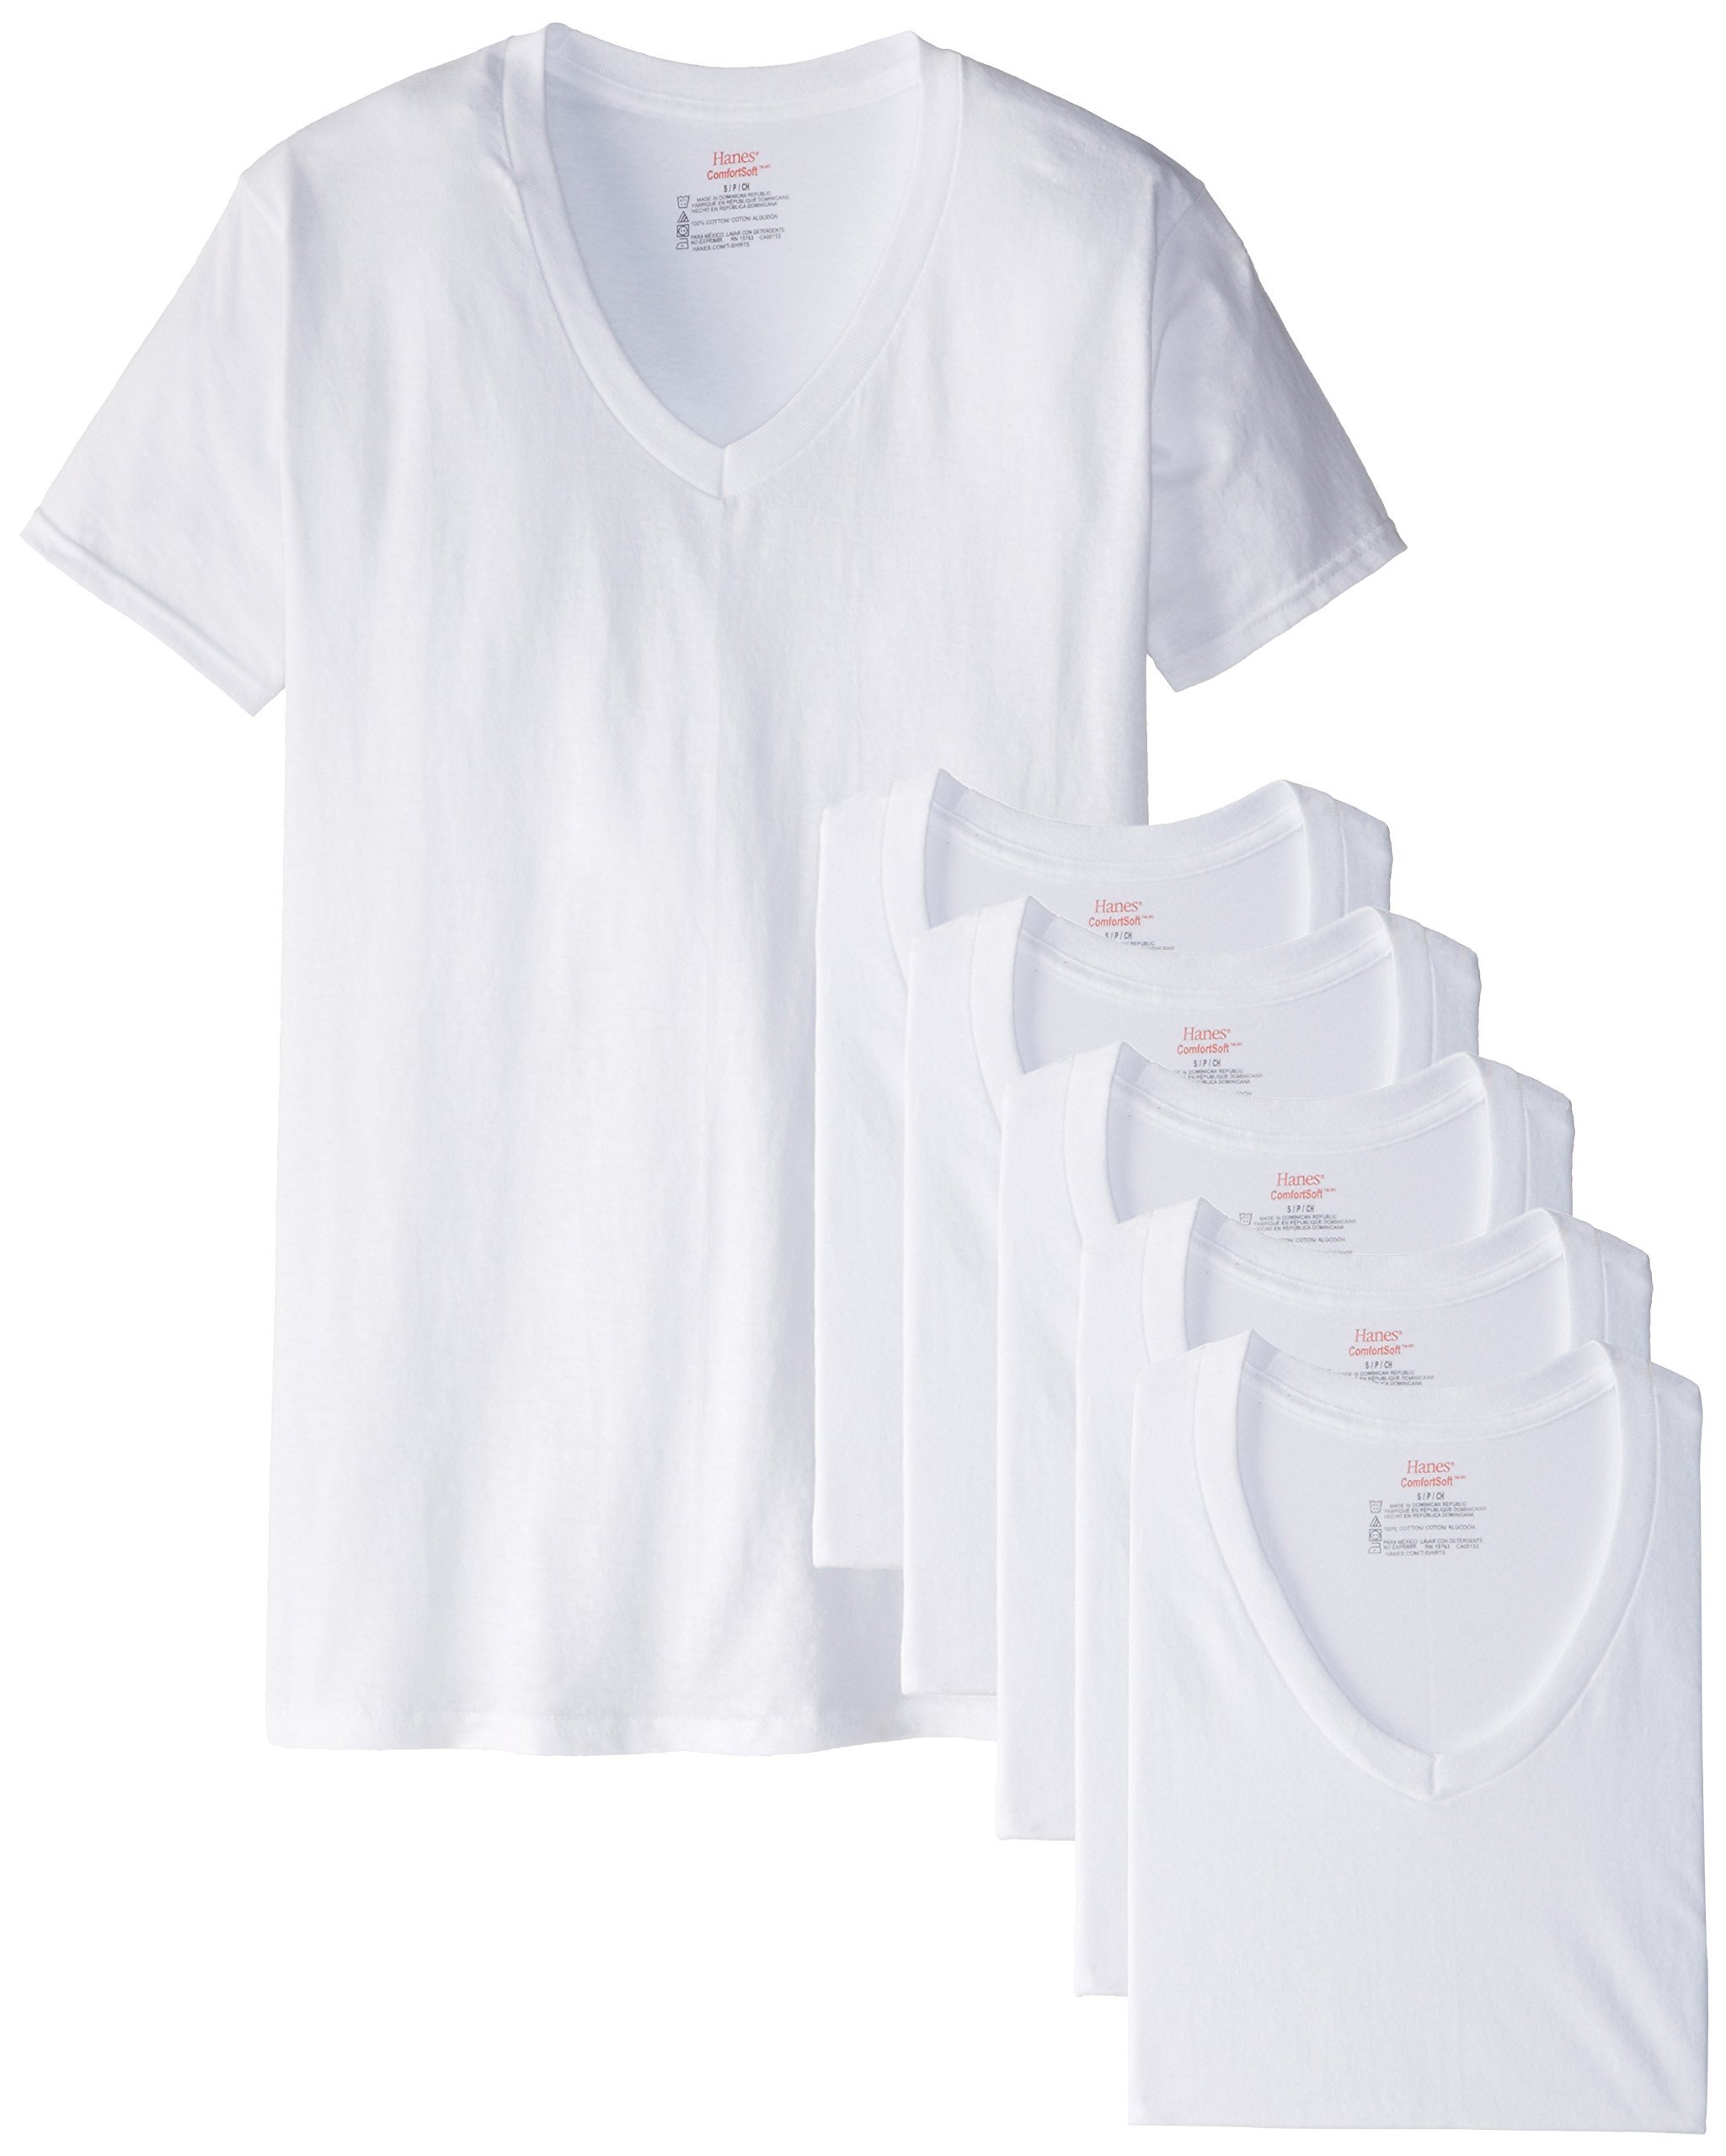 Hanes men 39 s large tagless comfortsoft white v neck t shirt for Large v neck t shirts